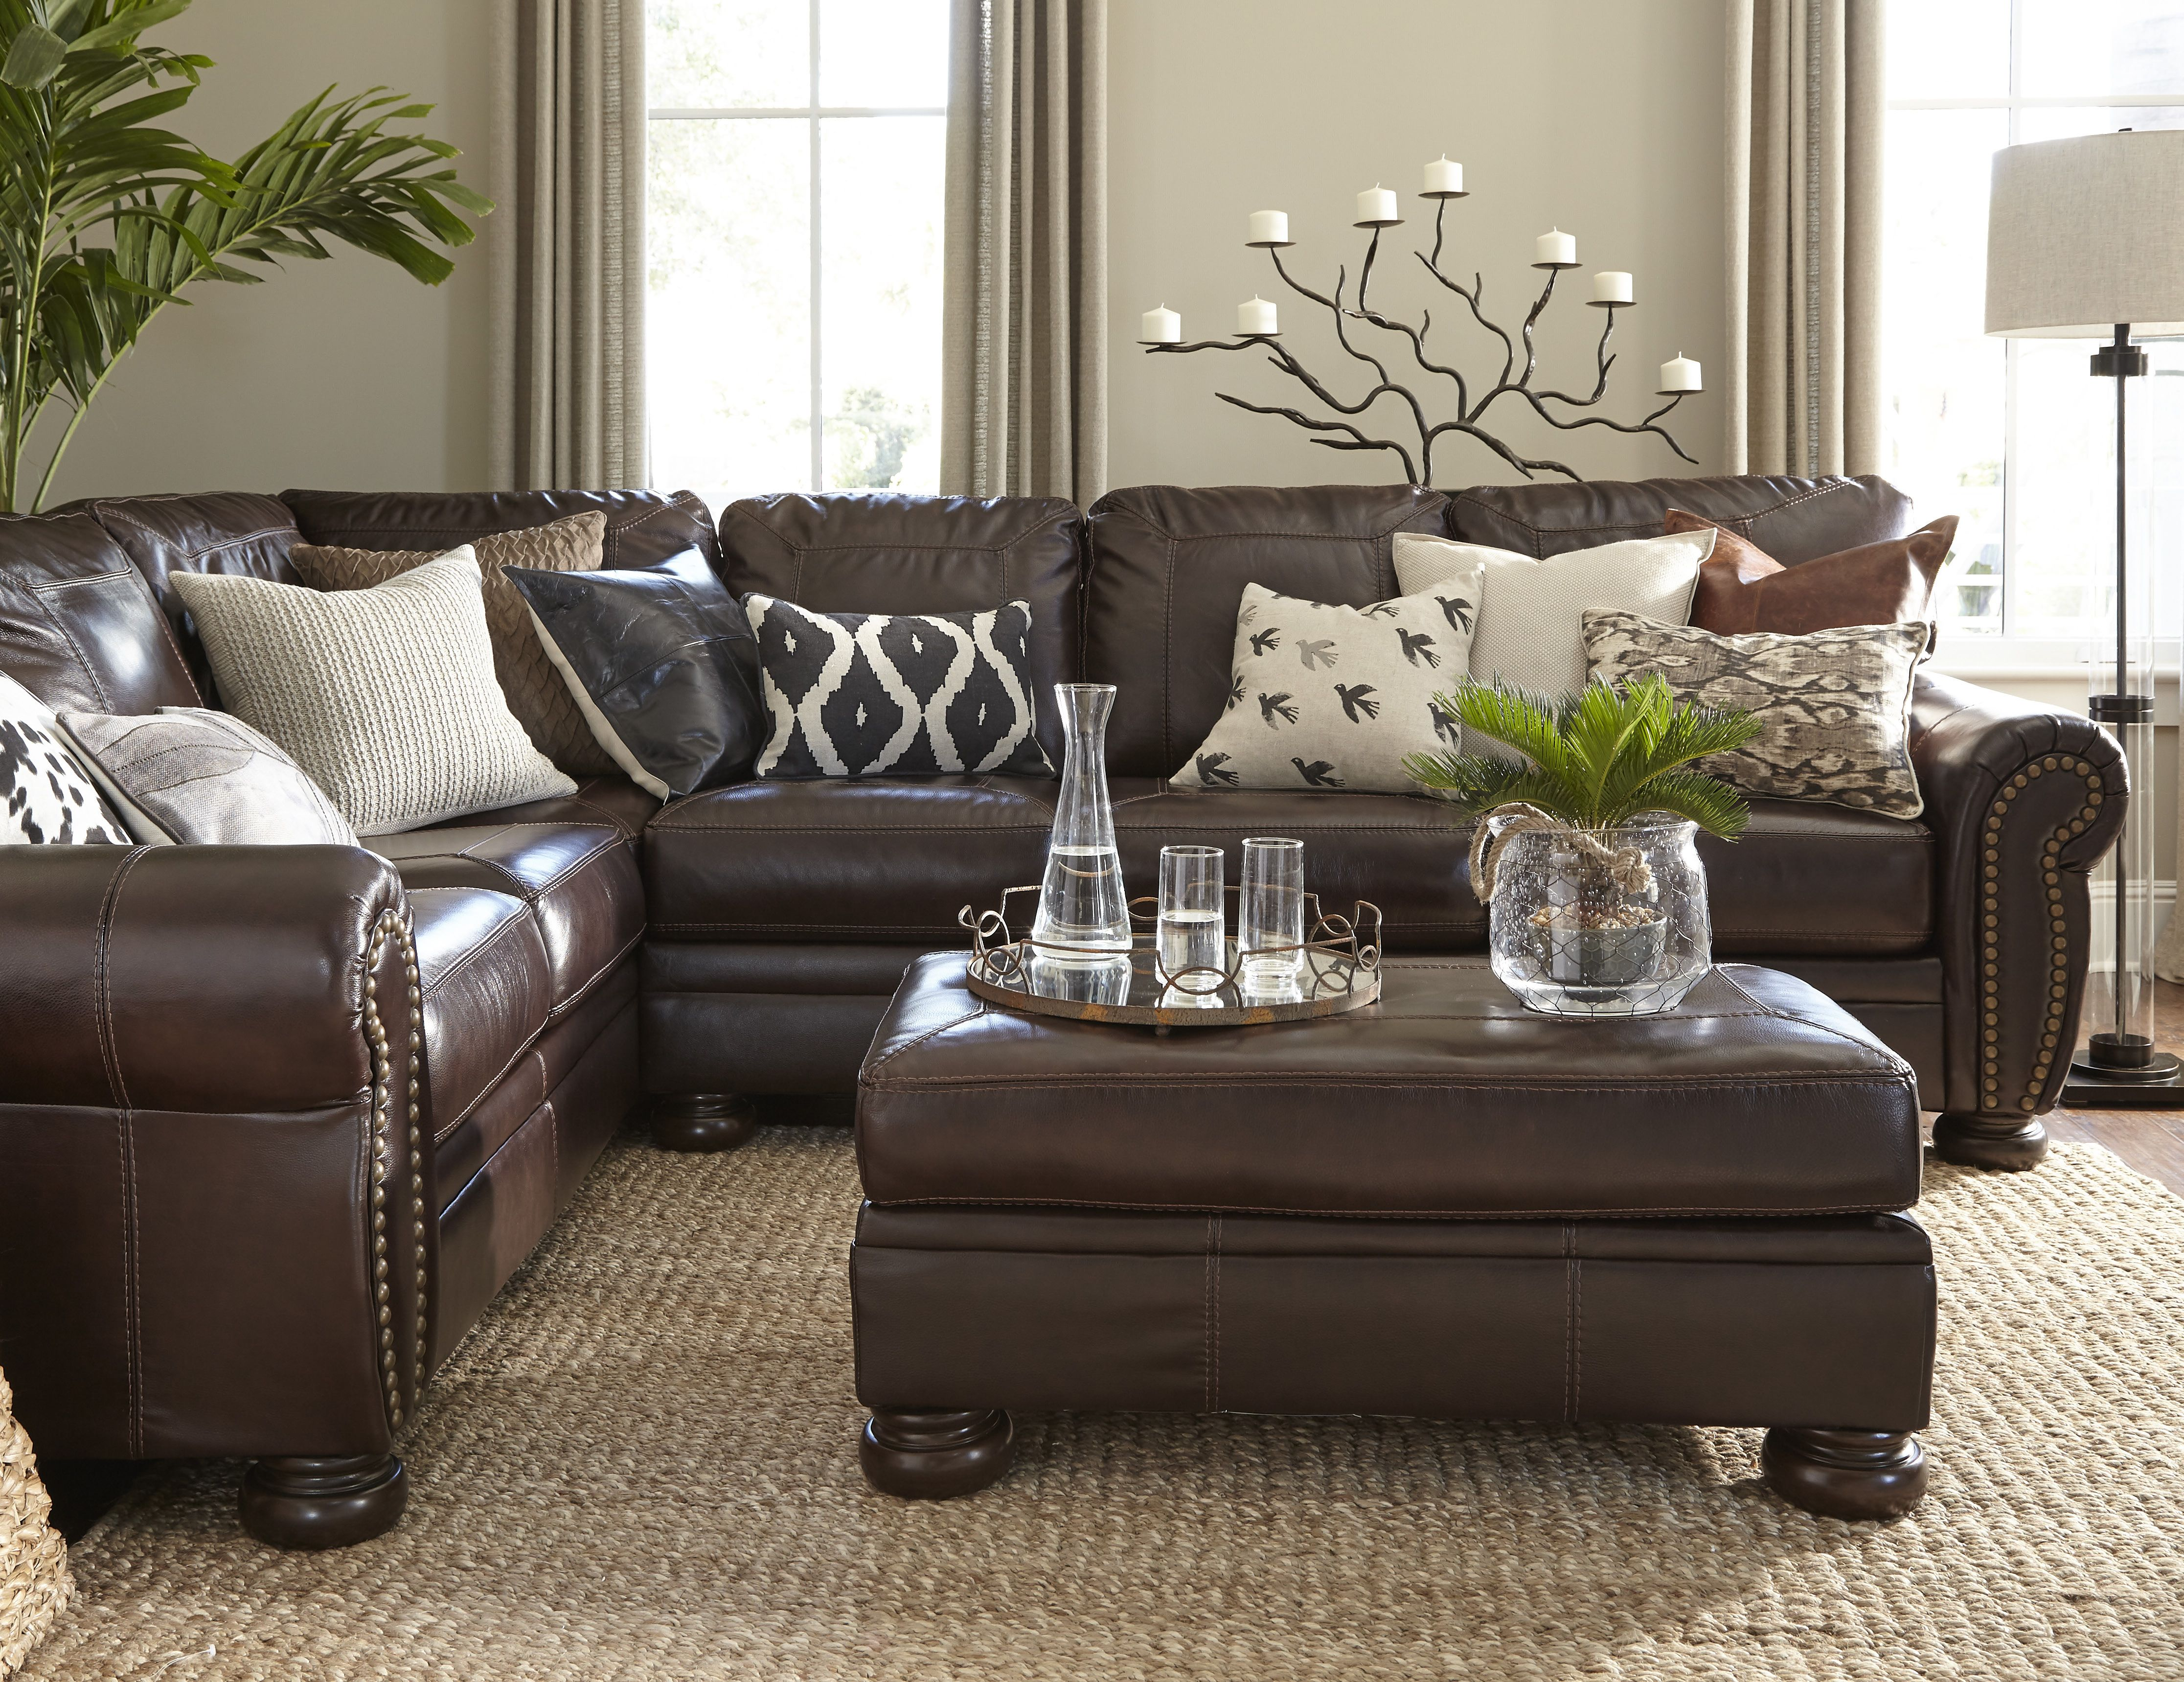 Barlow White Leather Sofa And Loveseat Set Creative Rustic Lighting Ideas In 2019 Lovely Living Room